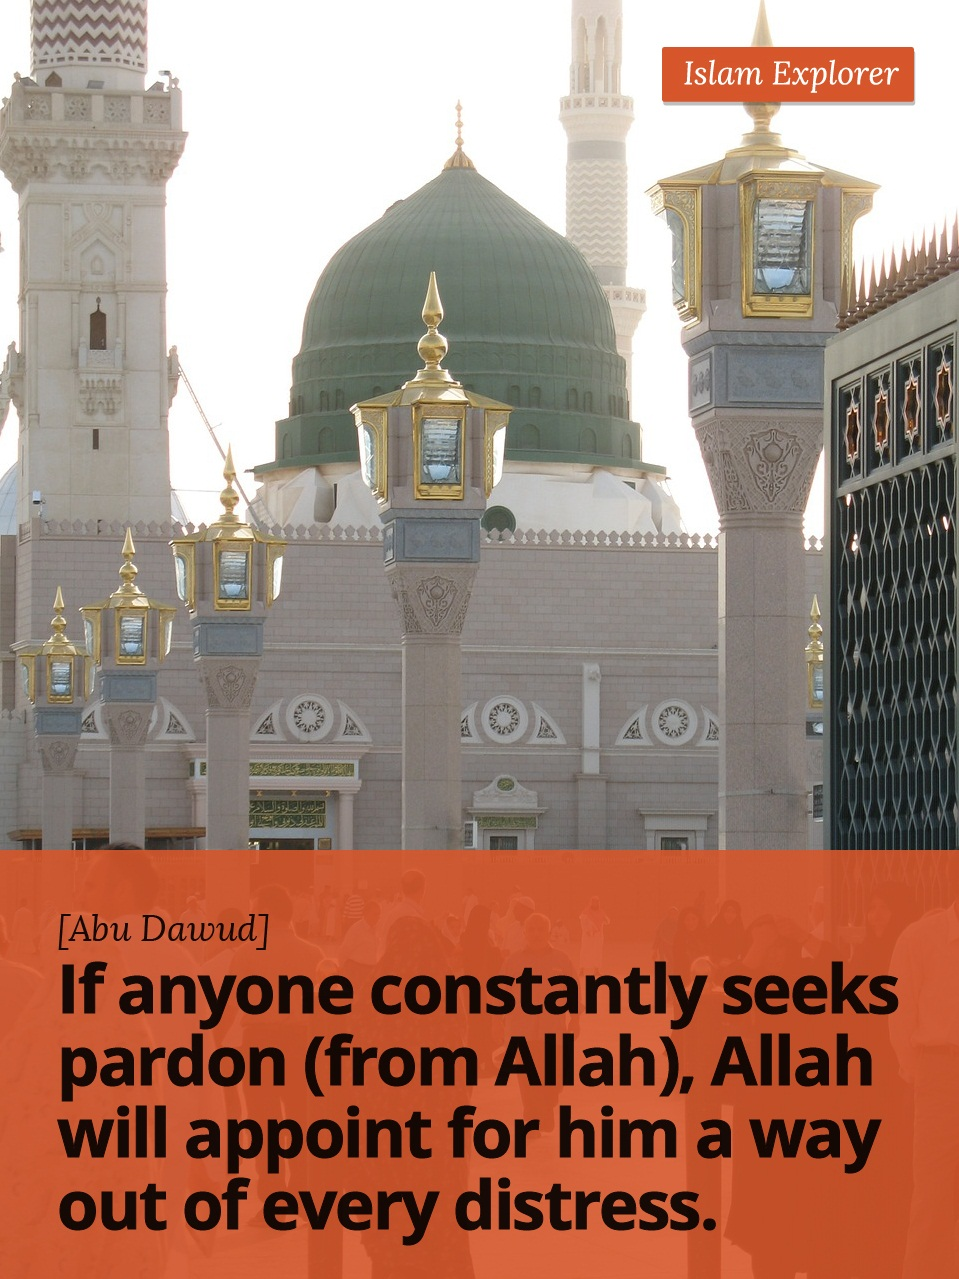 If anyone constantly seeks pardon (from Allah)